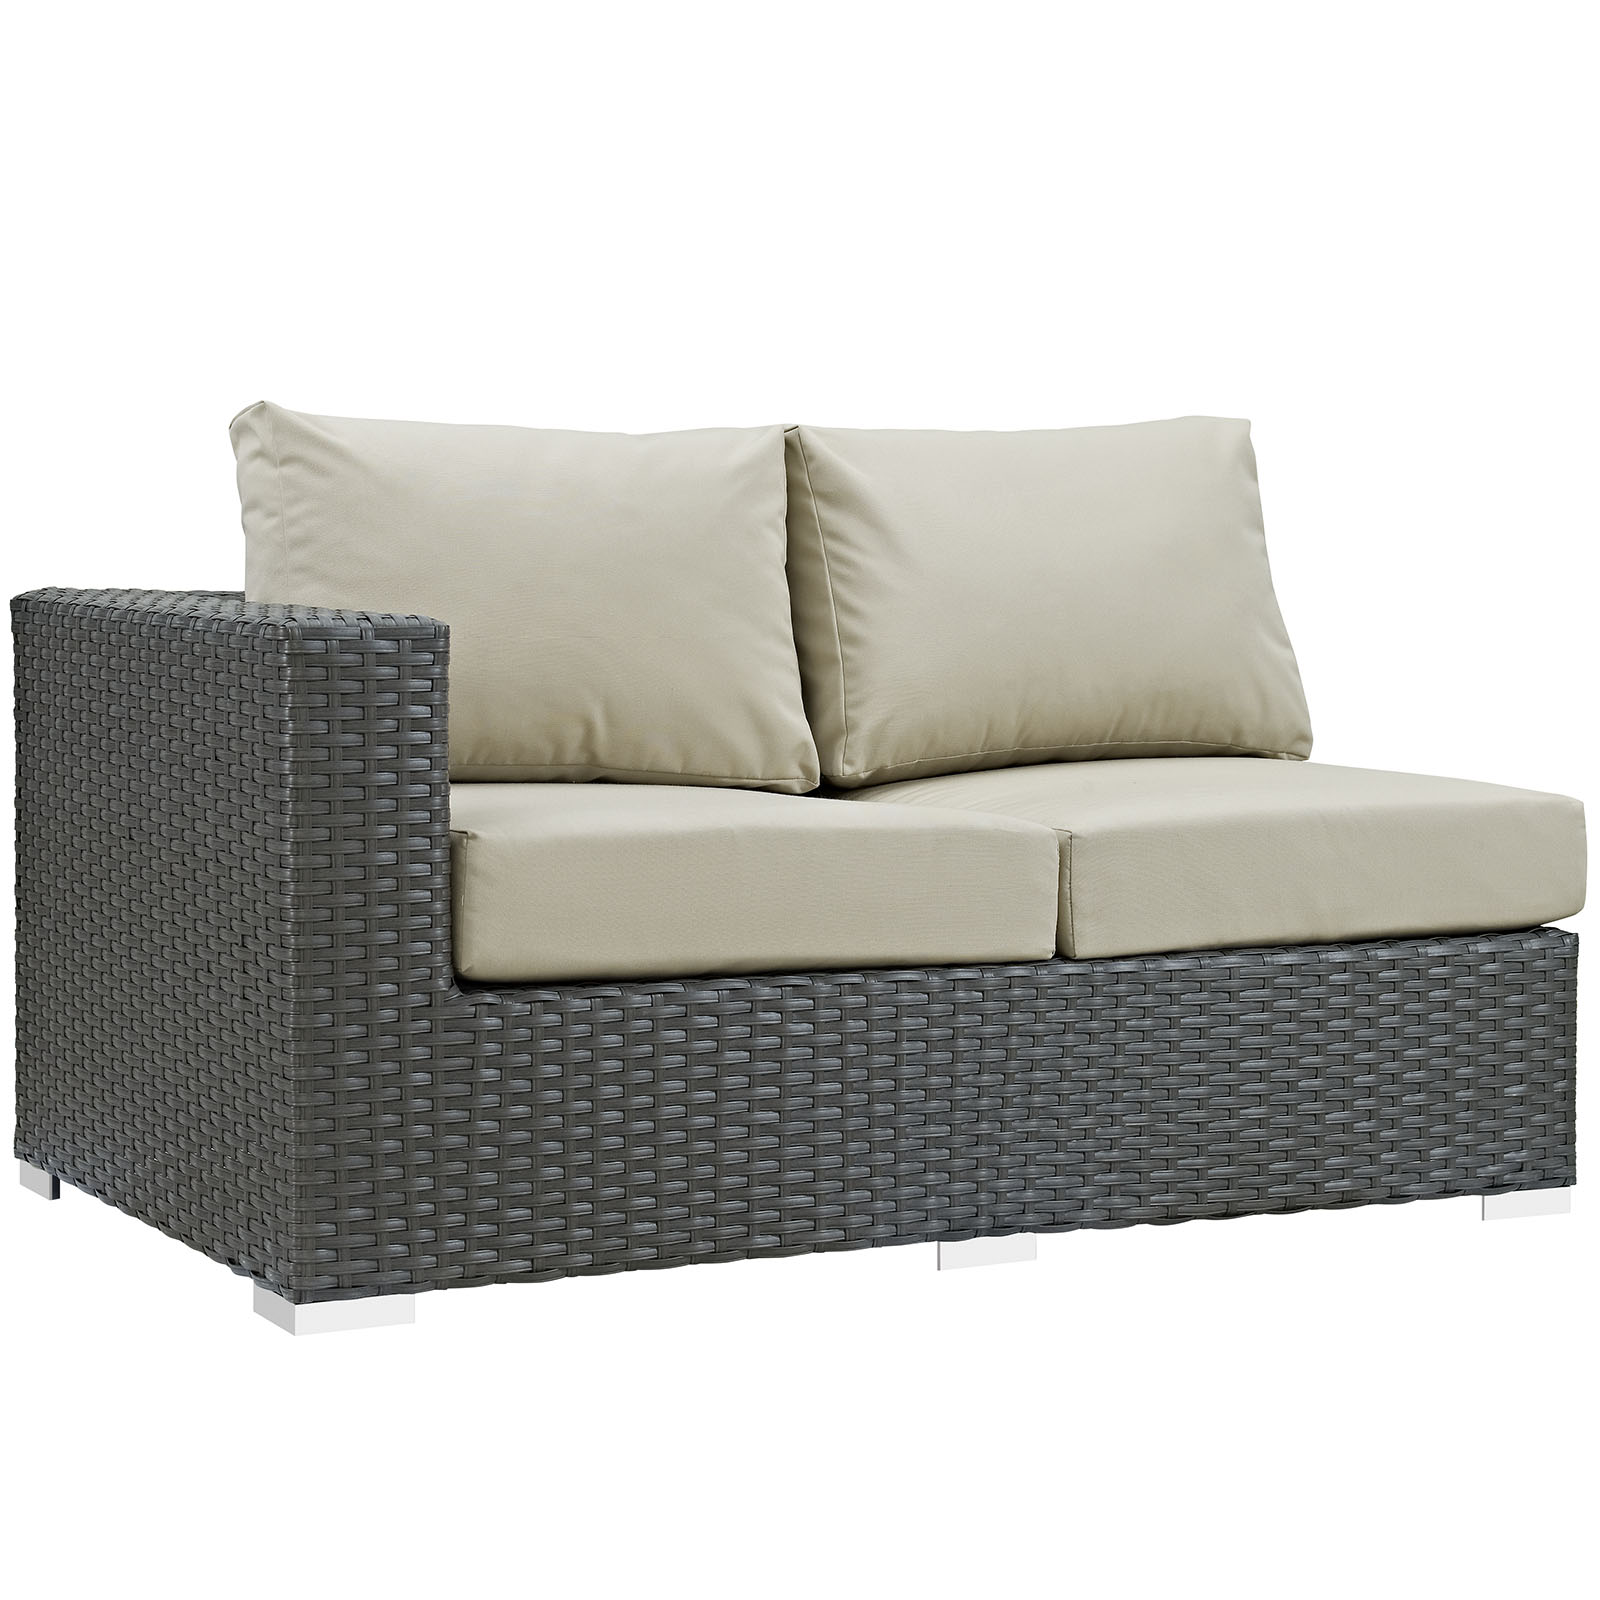 Modern Contemporary Urban Design Outdoor Patio Balcony Left Arm Loveseat Sofa, Beige, Rattan